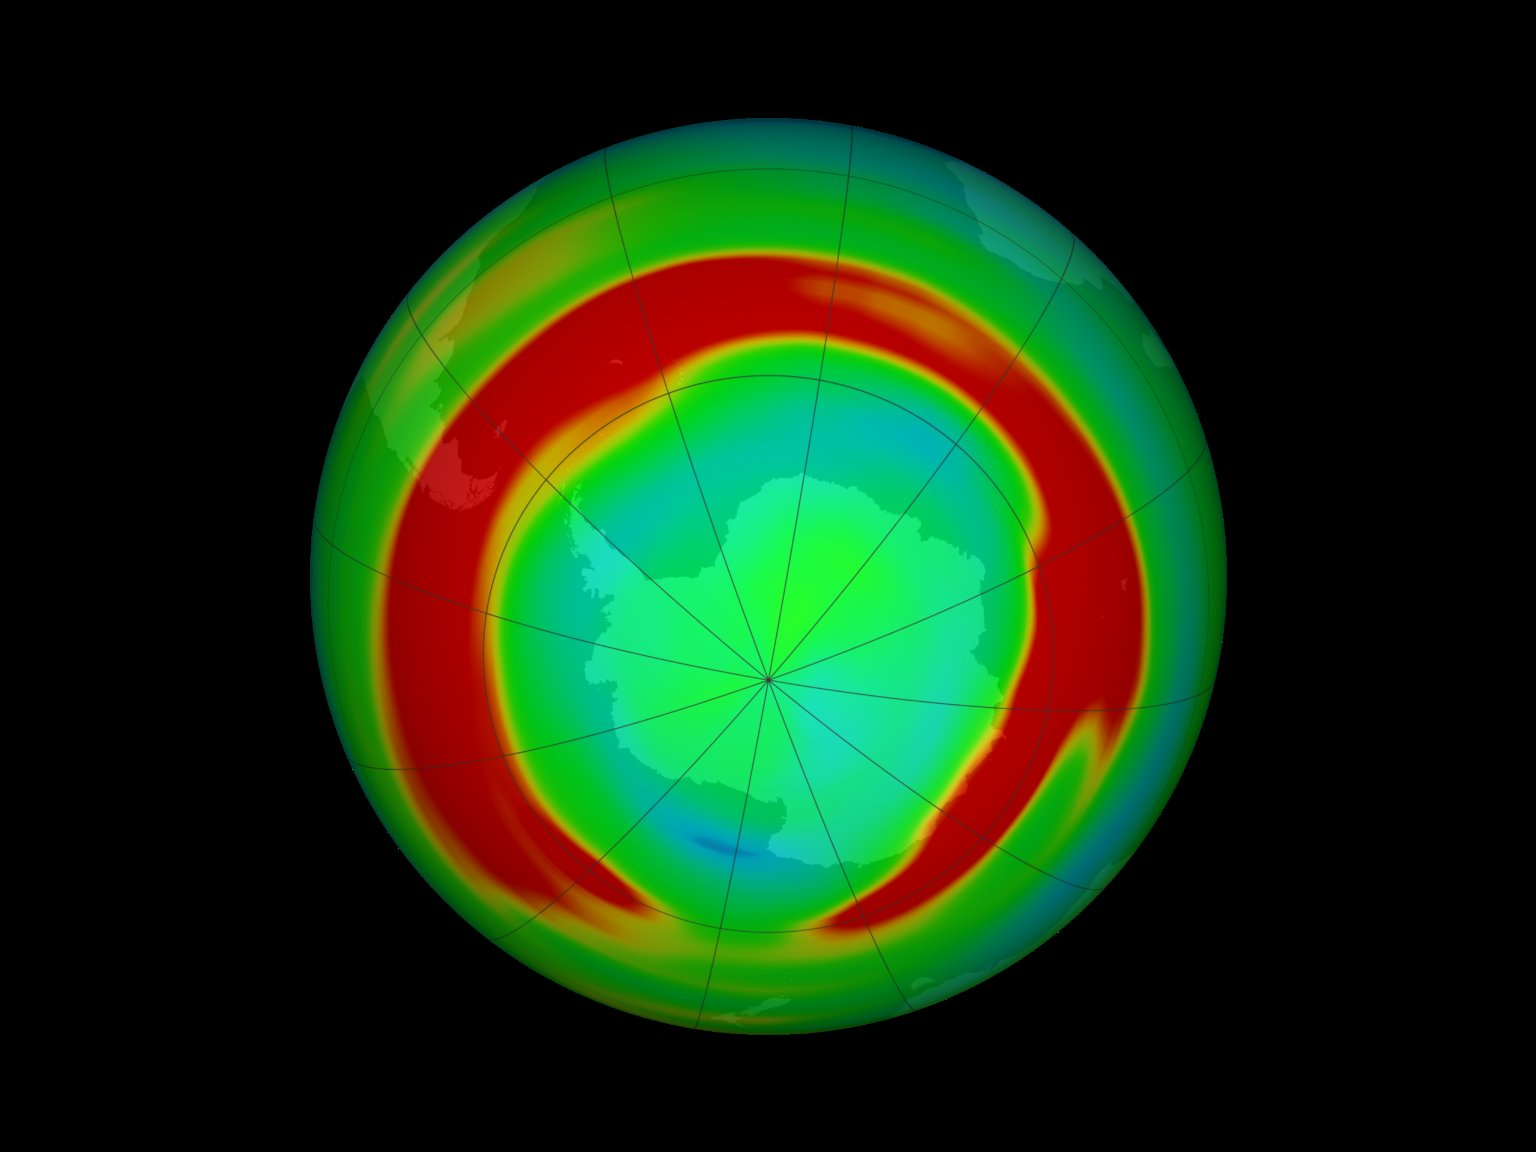 New Data from Aura's Microwave Limb Sounder (MLS) Ozone